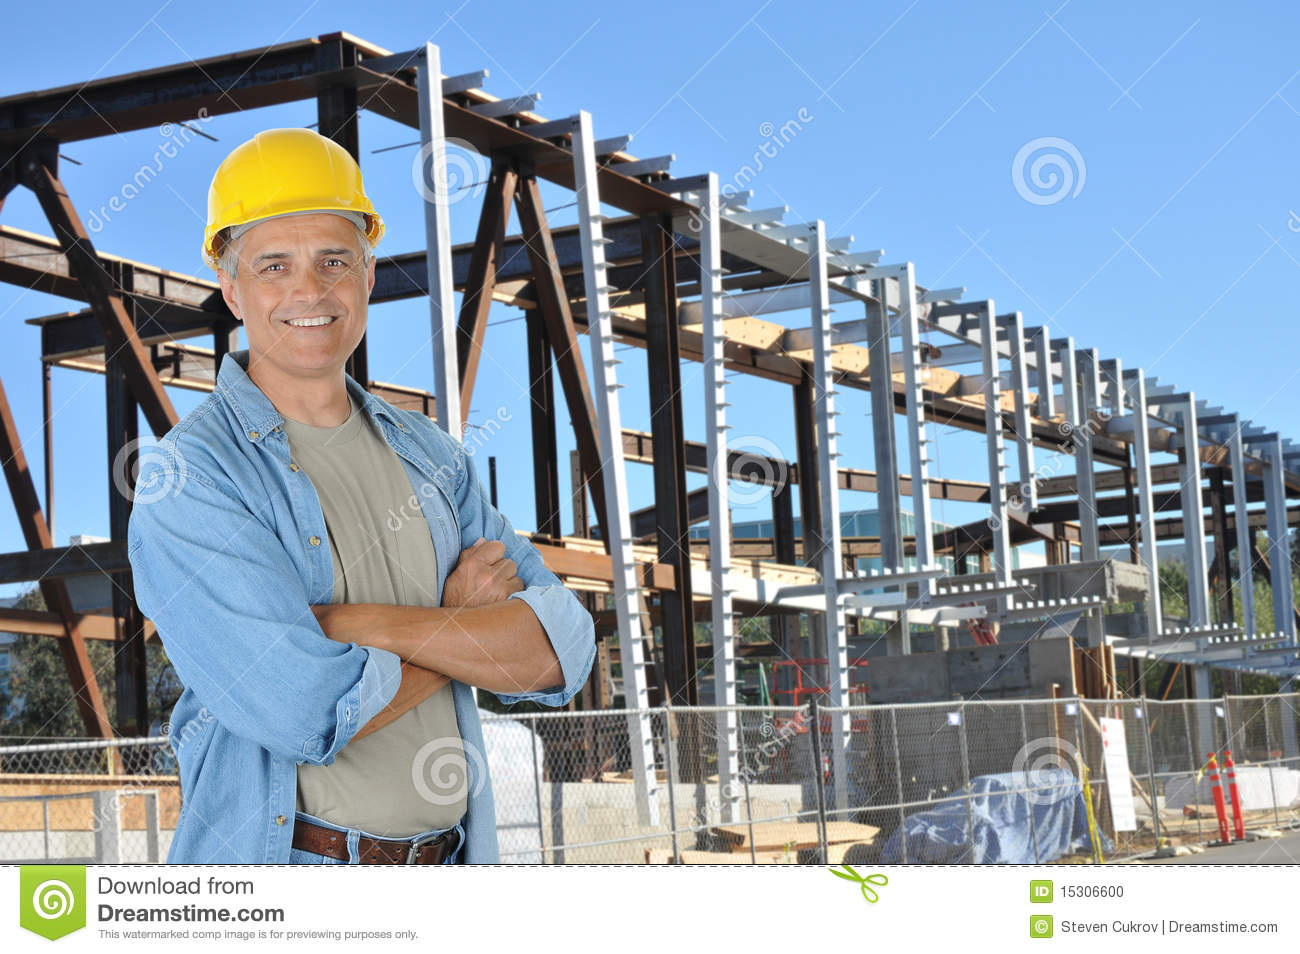 Building Construction Jobs : Construction worker on job site stock photo image